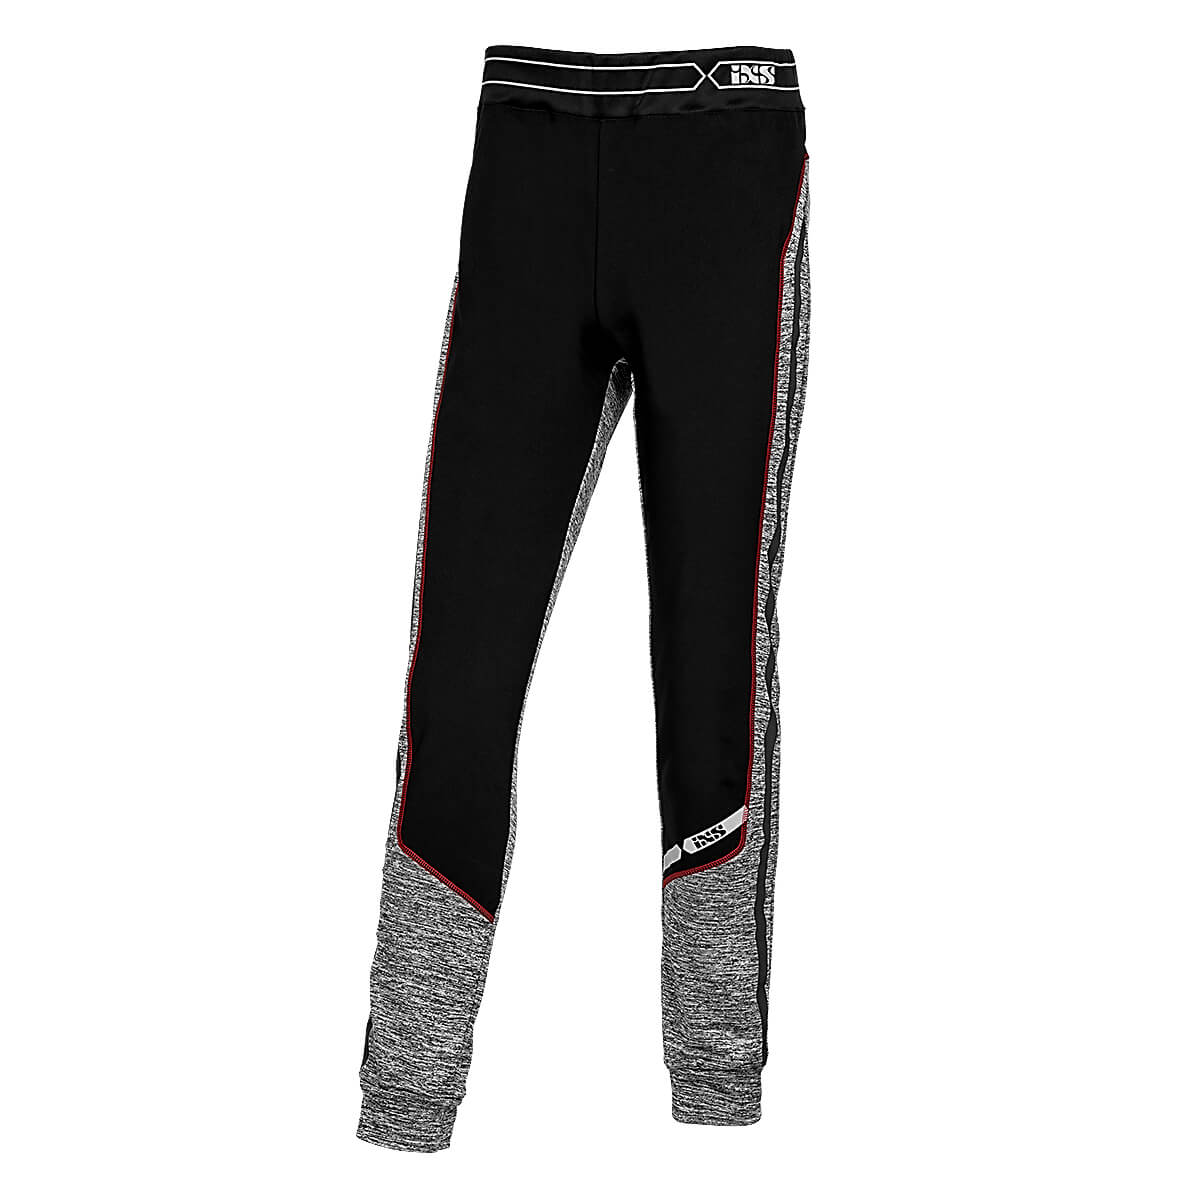 iXS FUNKTIONS-HOSE ICE 1.0